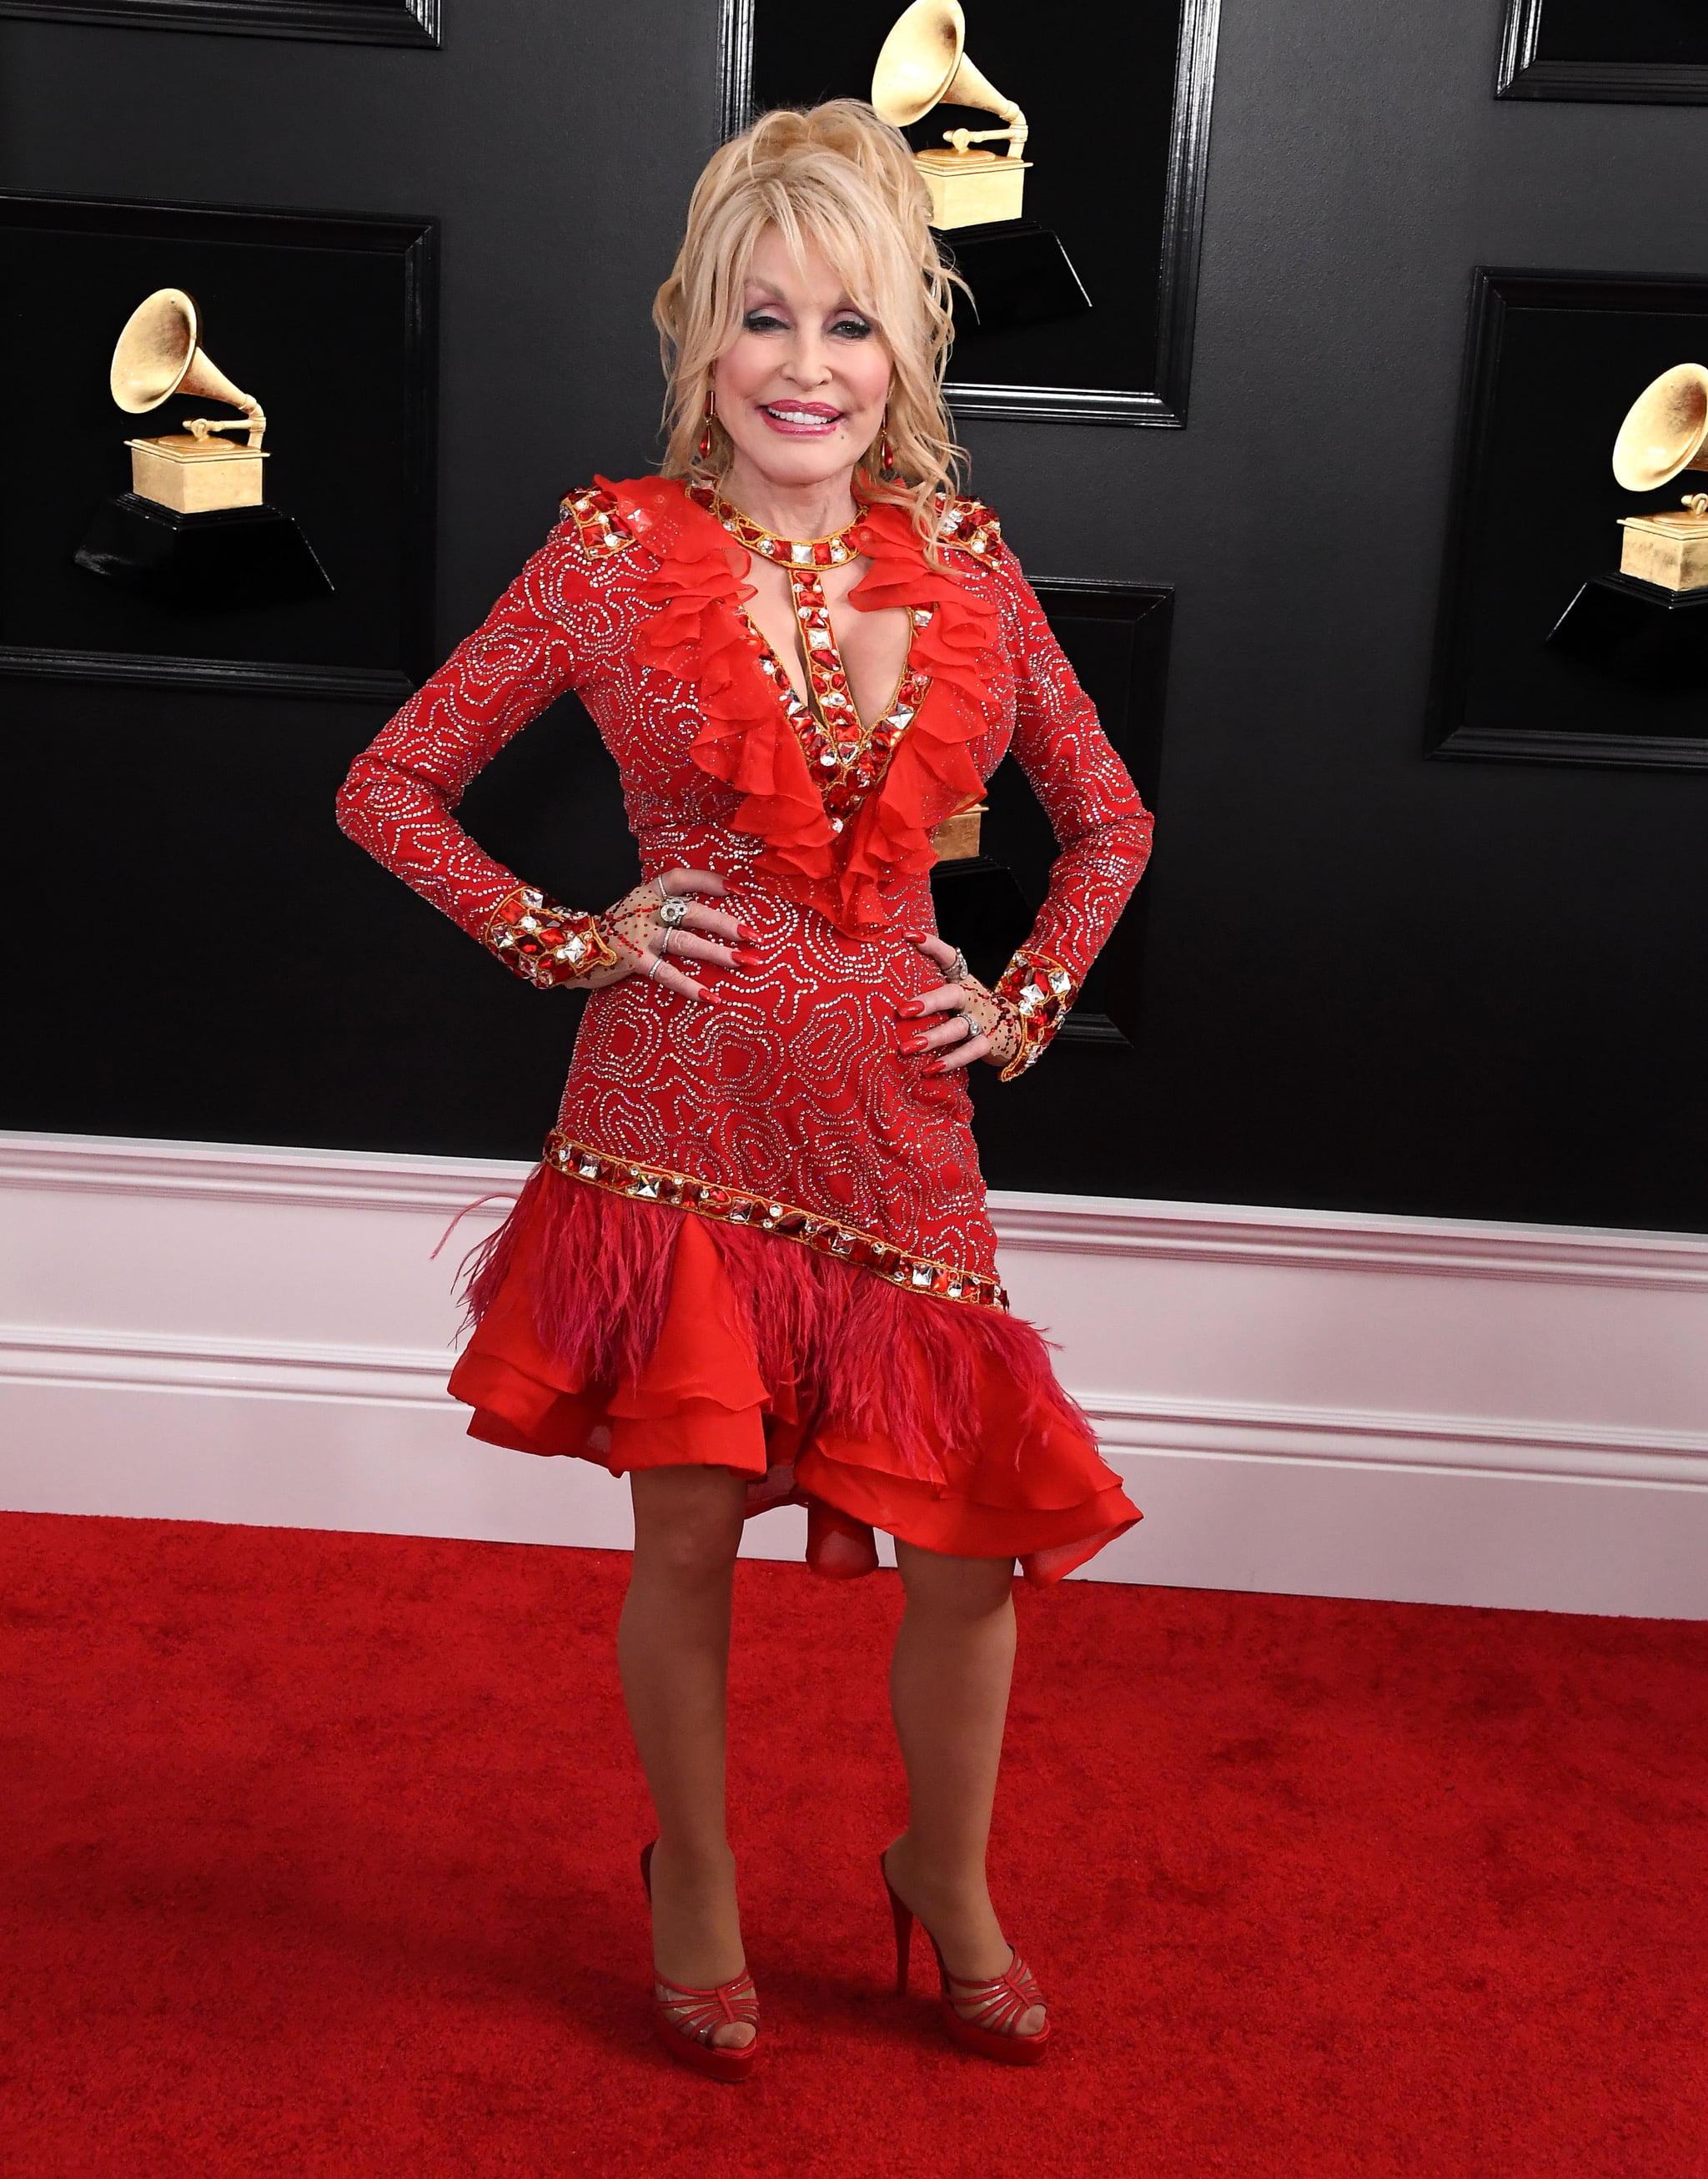 LOS ANGELES, CALIFORNIA - FEBRUARY 10: Dolly Parton arrives at the 61st Annual GRAMMY Awards at Staples Center on February 10, 2019 in Los Angeles, California. (Photo by Steve Granitz/WireImage)